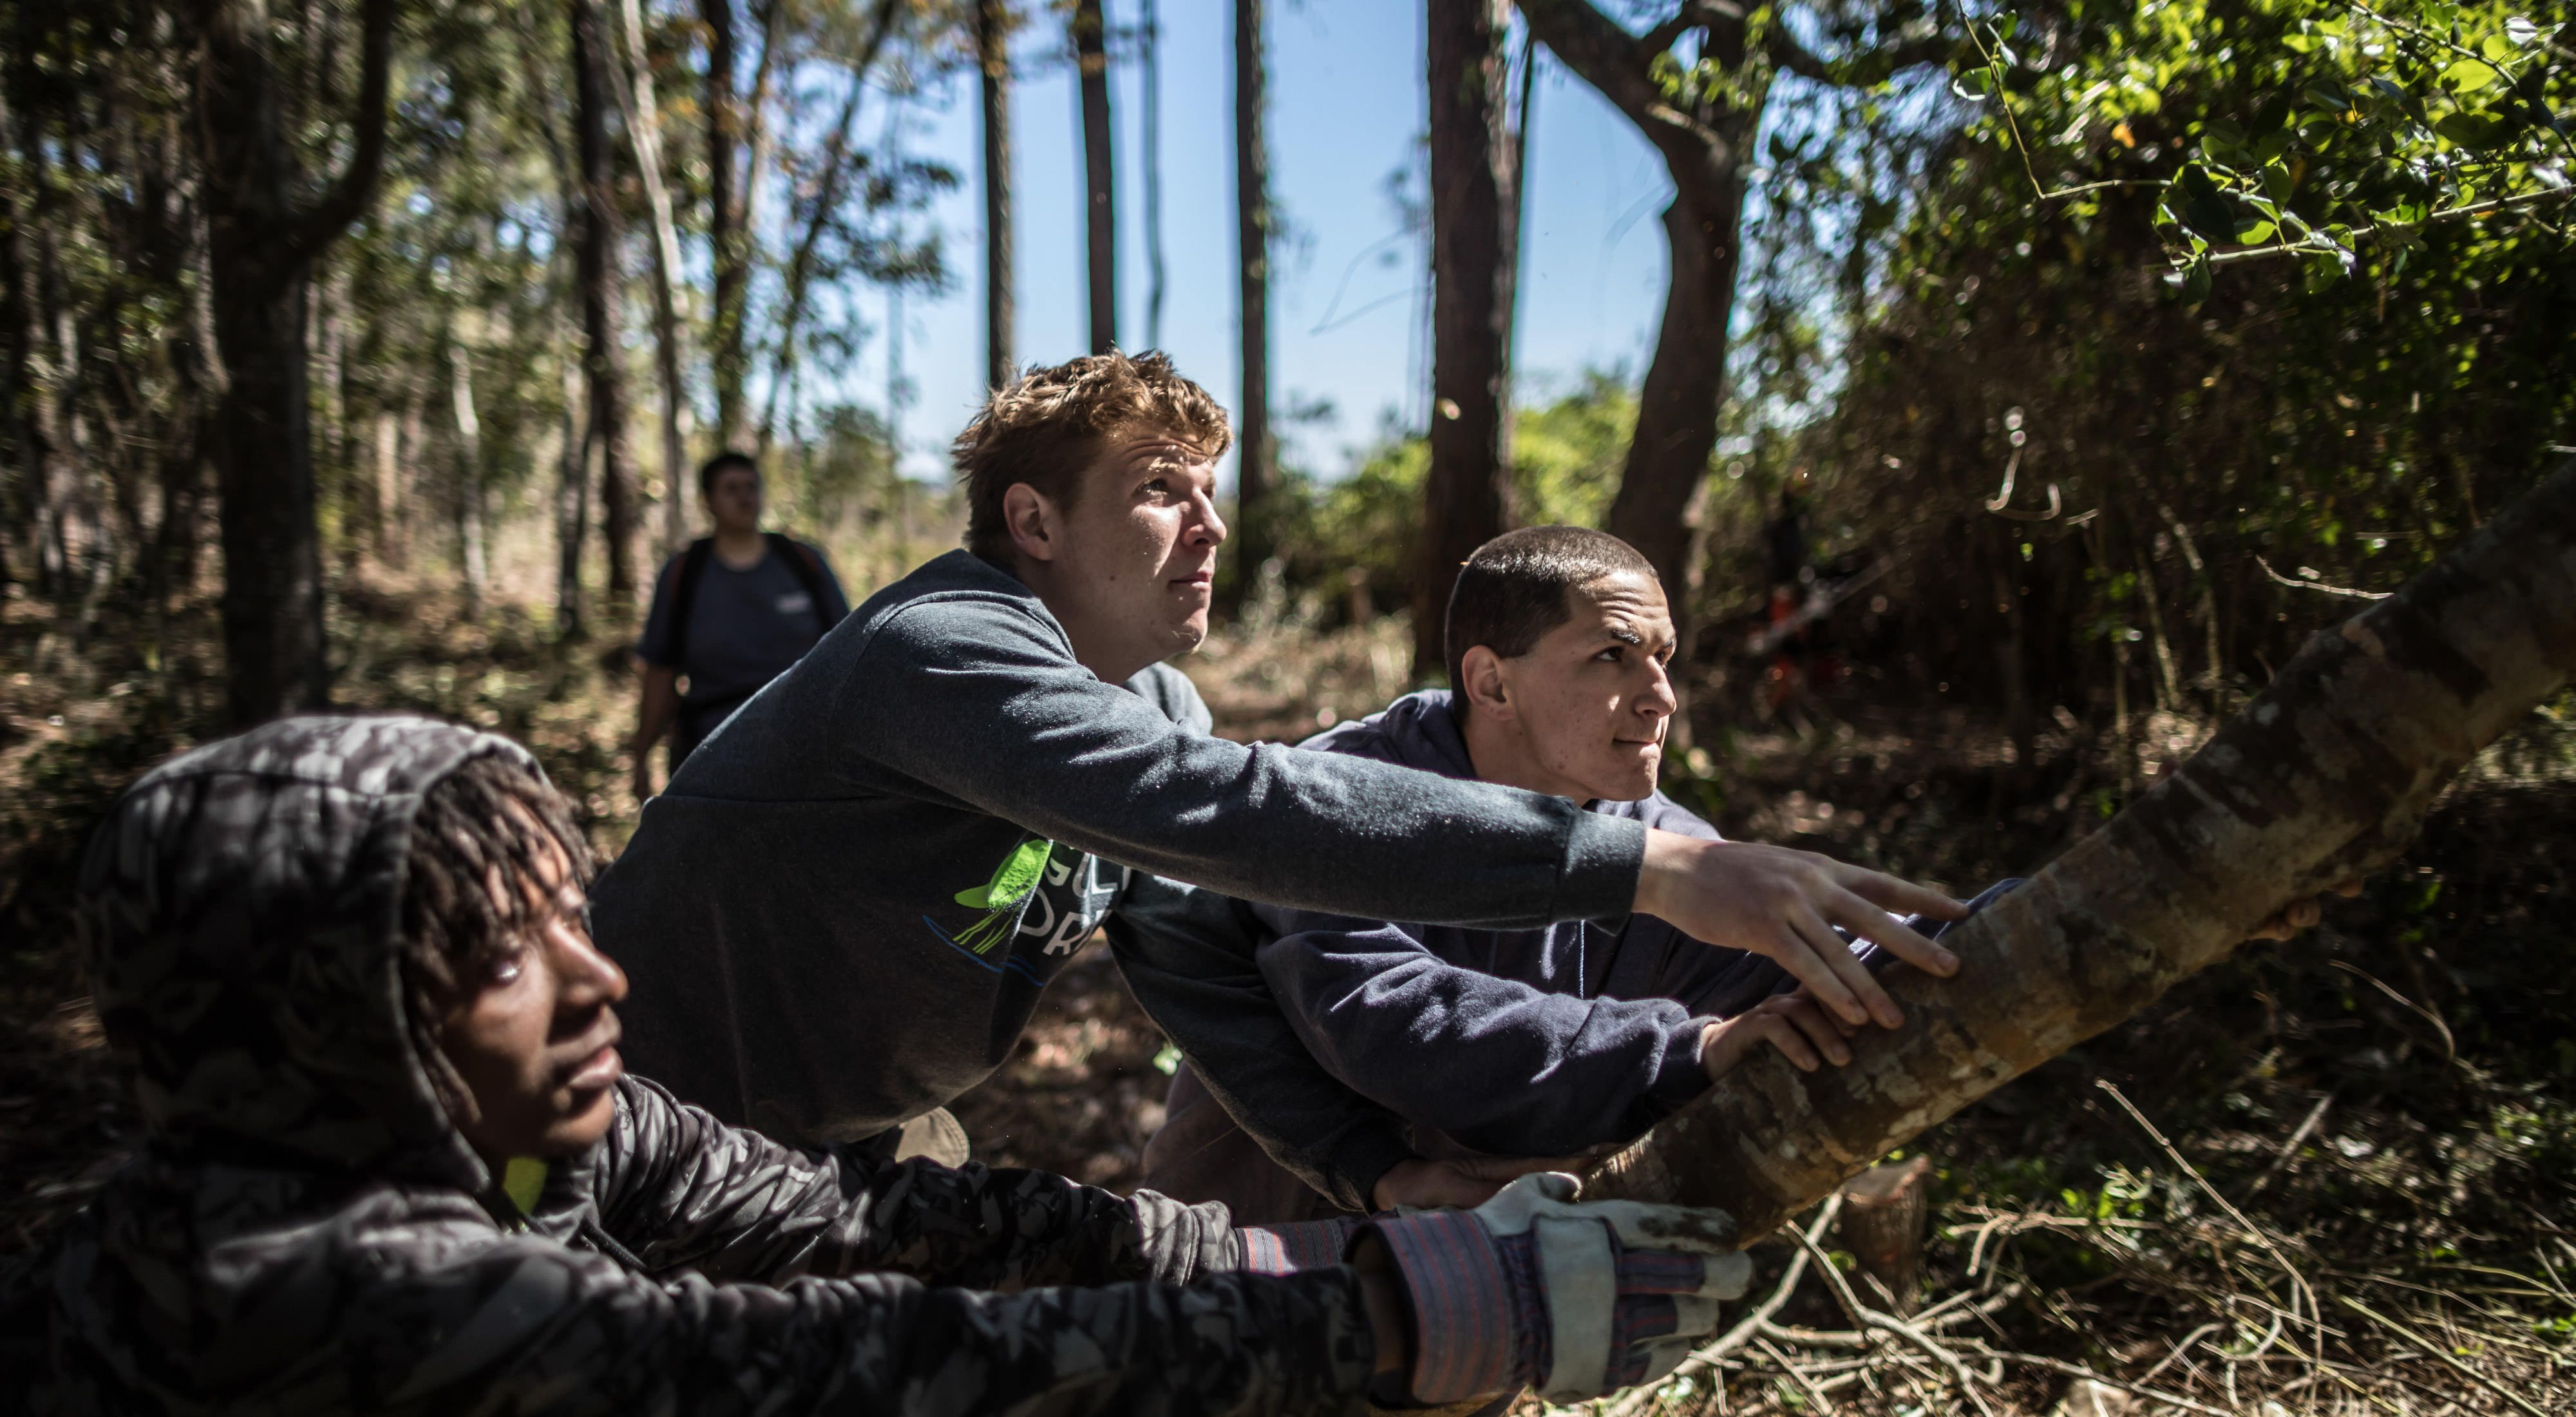 Conservation Corps members Quantavius Fuller, 20, Destin Dodd, 20, and Jonathan James, 18, push down a cut tree in Apalachicola, Florida, while working on environmental sustainability needs for the Panhandle region of the state. This project is also supported by The Nature Conservancy.